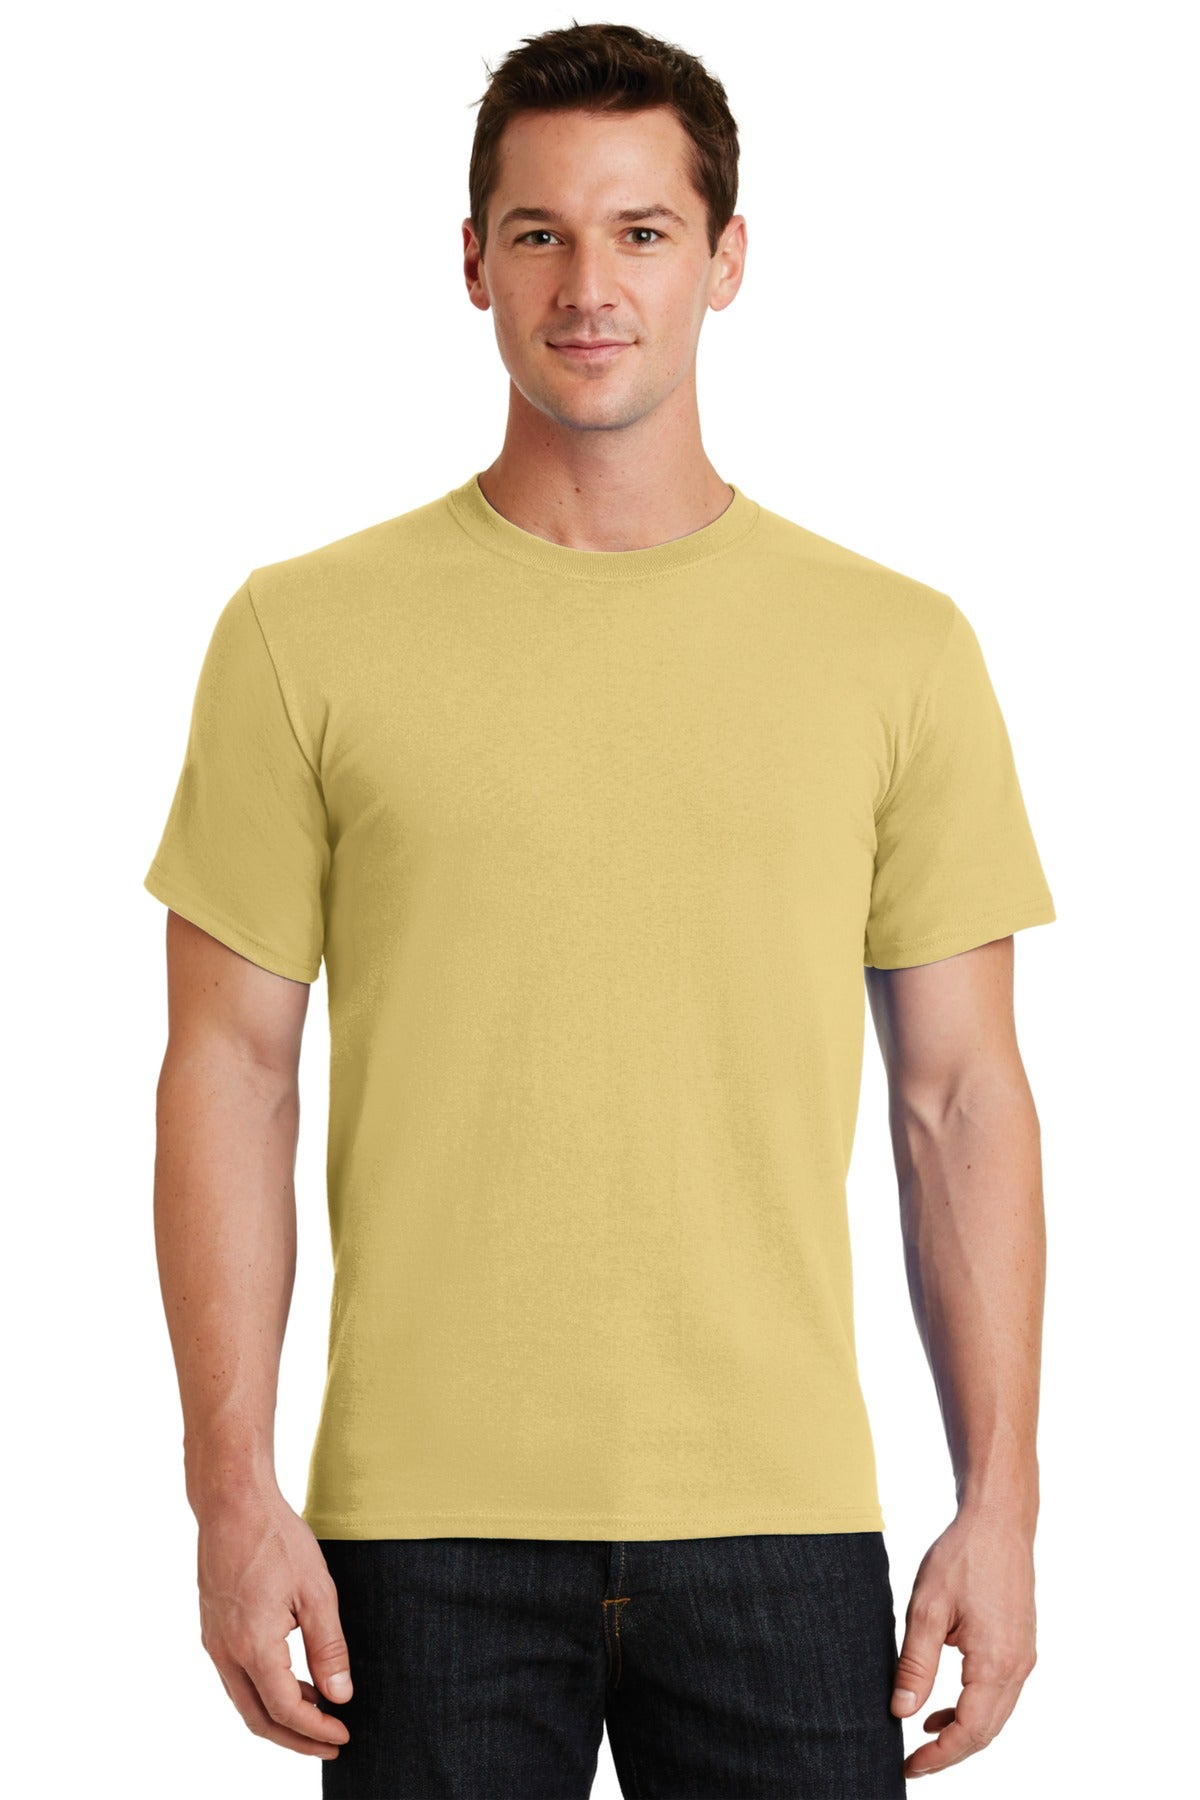 Daffodil Yellow Port & Company - Essential T-Shirt